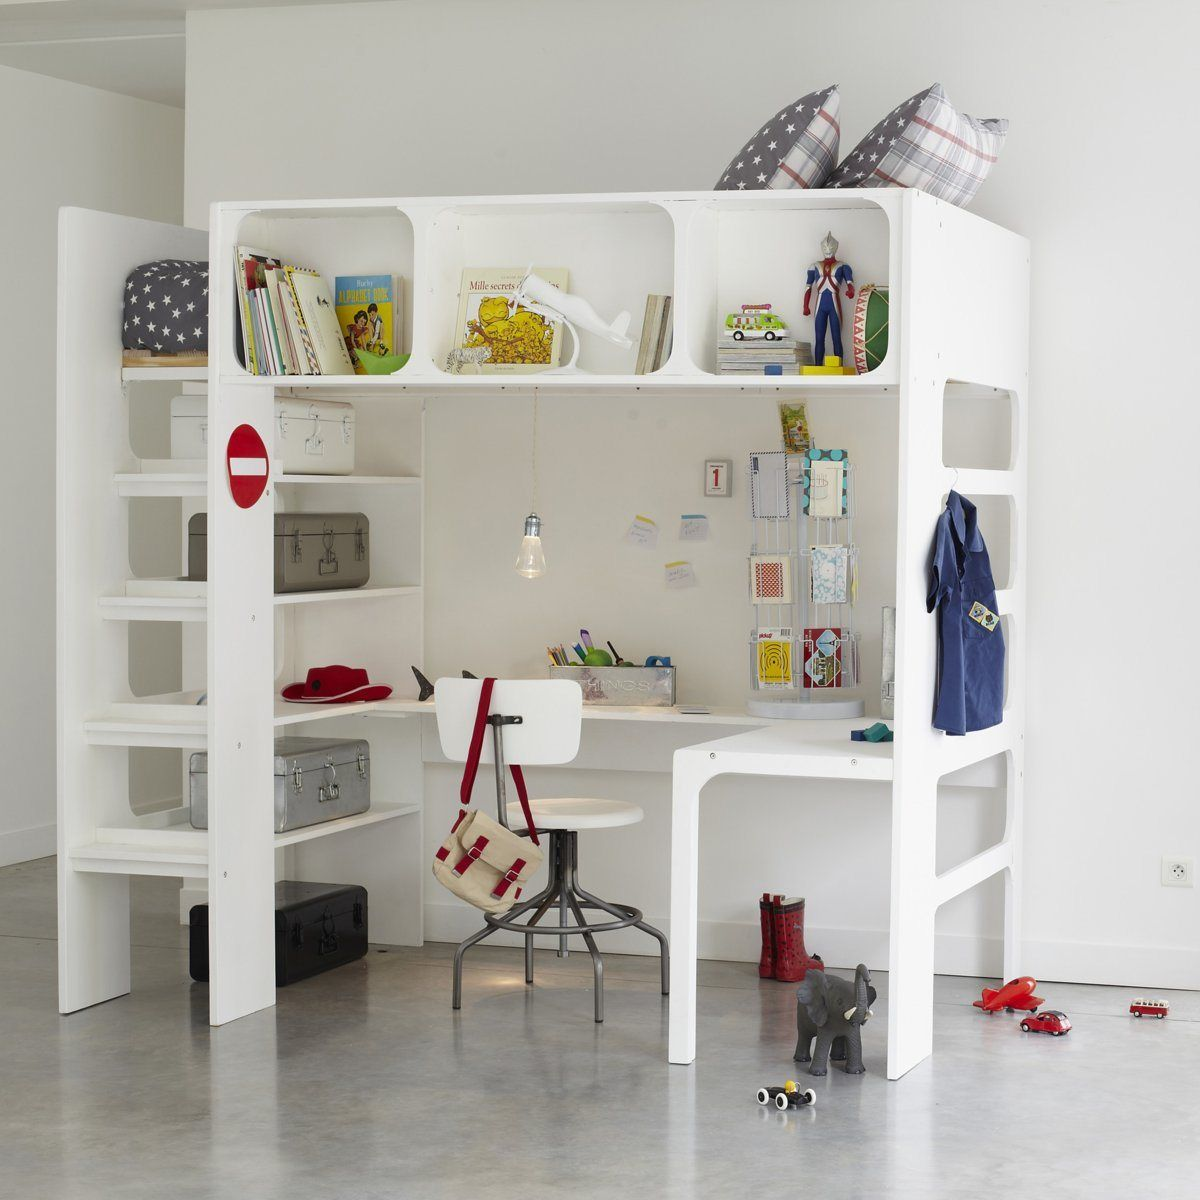 La redoute lit bureau et commode gain de place bcn amenagement int - Lit enfant mezzanine ...